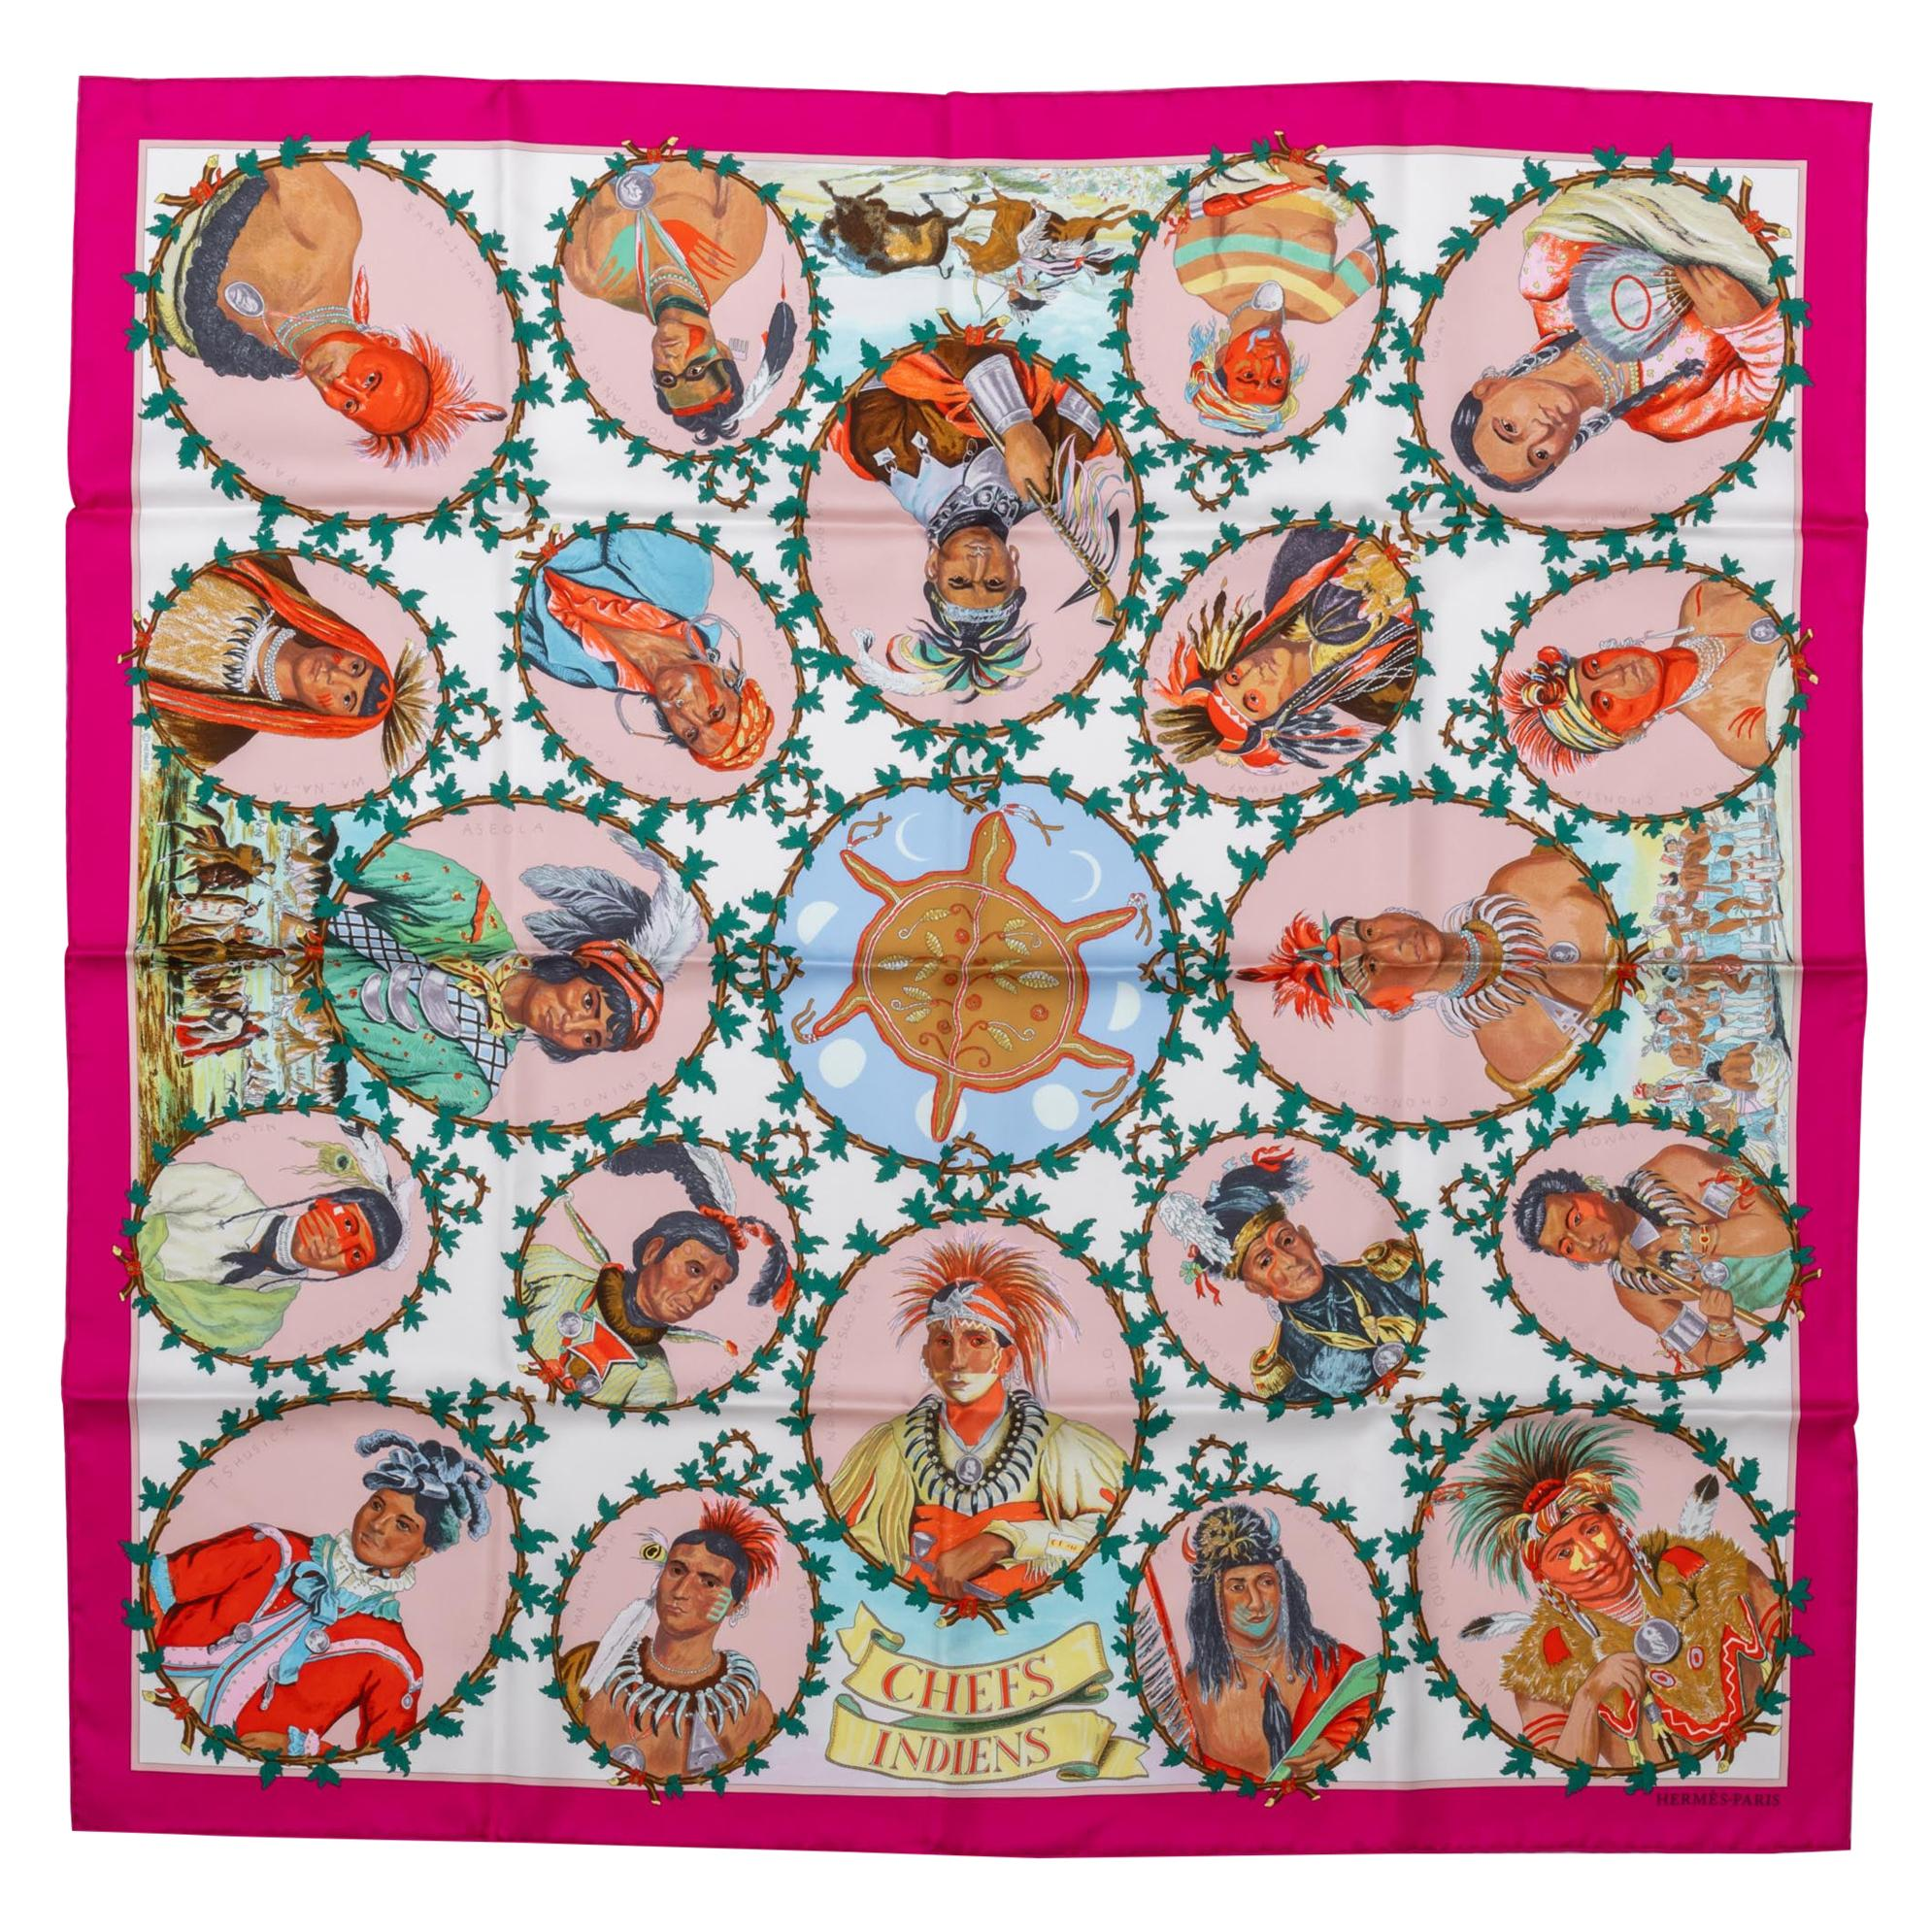 New in Box Hermès Rare Fuchsia Chefs Indiens Scarf